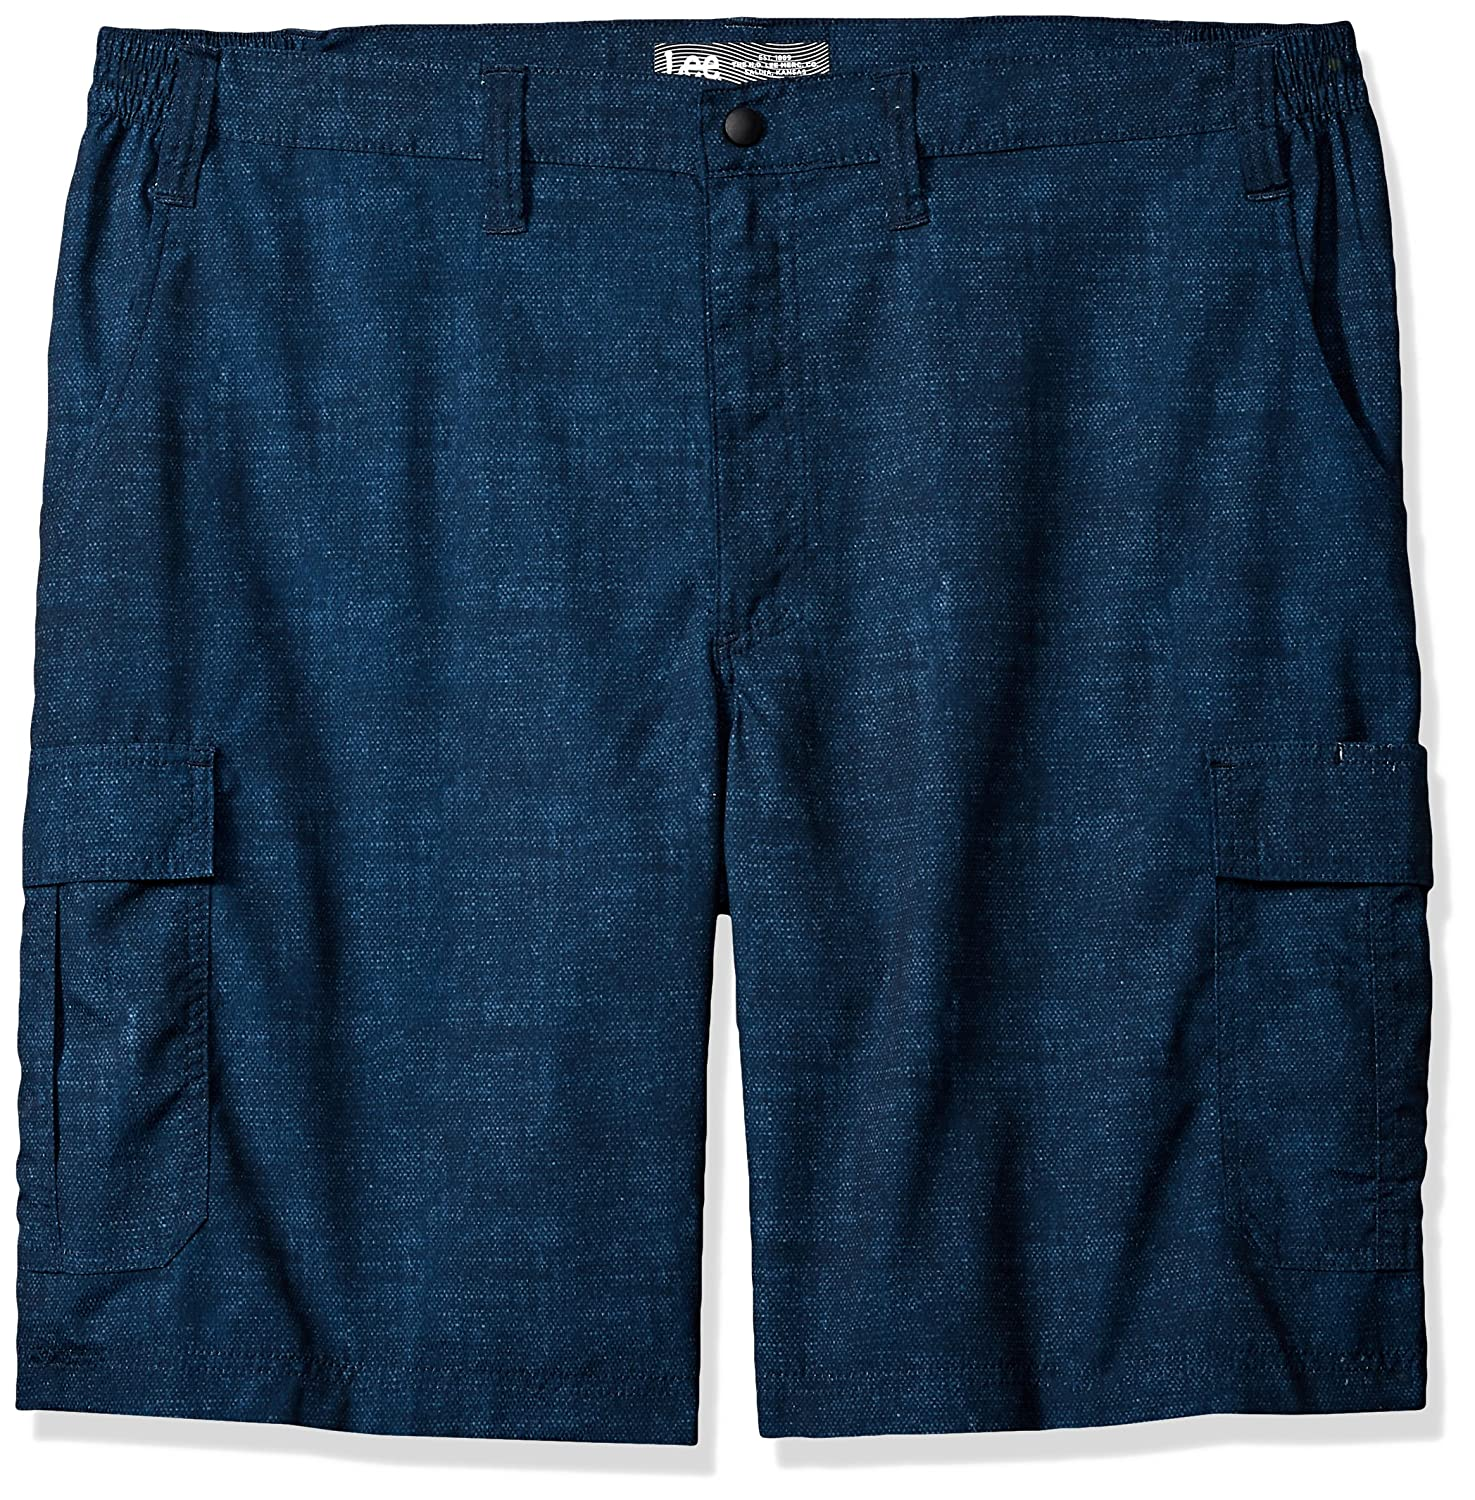 Lee Mens Big-Tall Big and Tall Dungarees Performance Cargo Short 22851